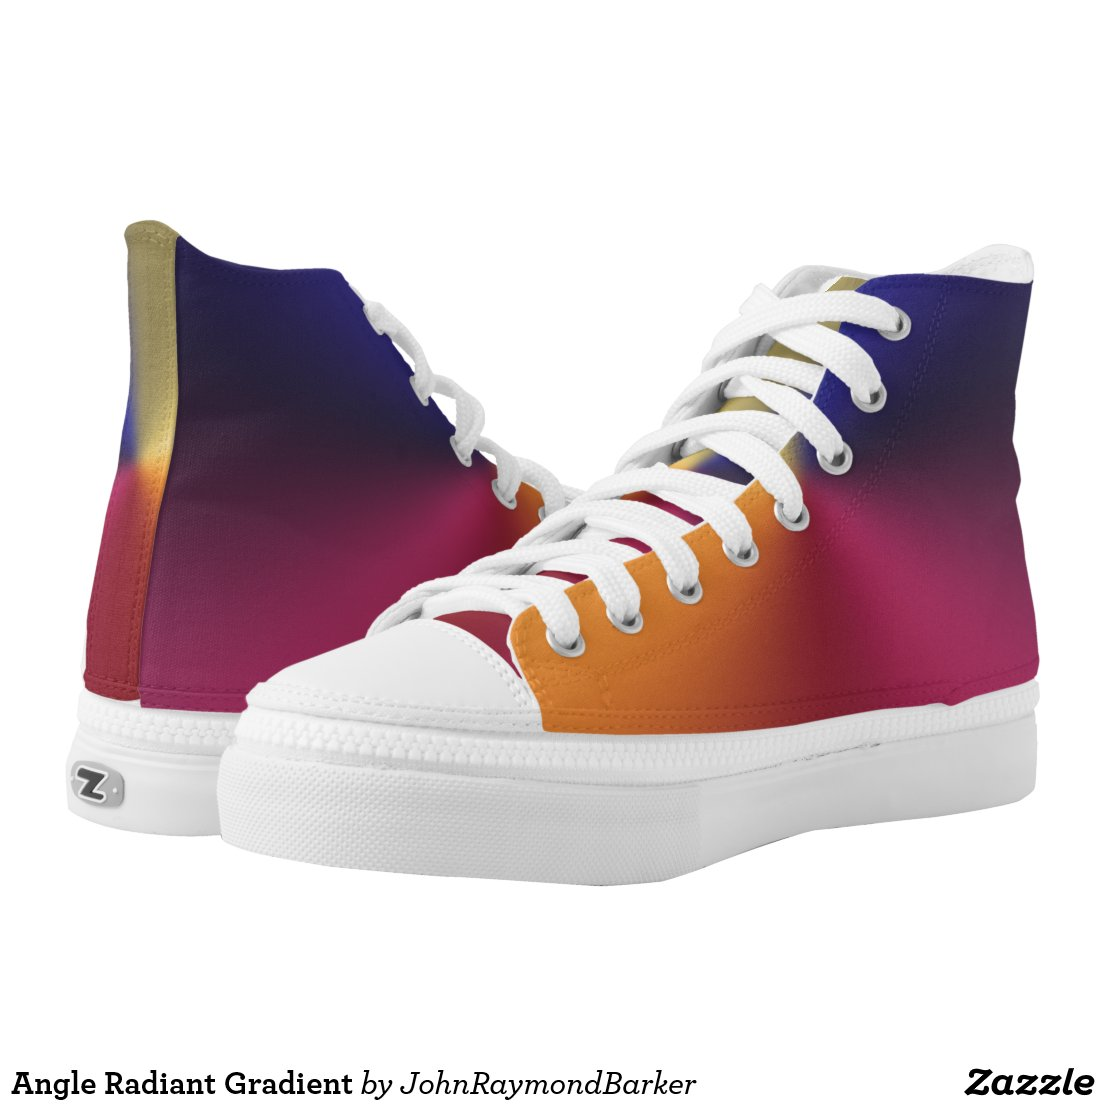 Angle Radiant Gradient High-Top Sneakers